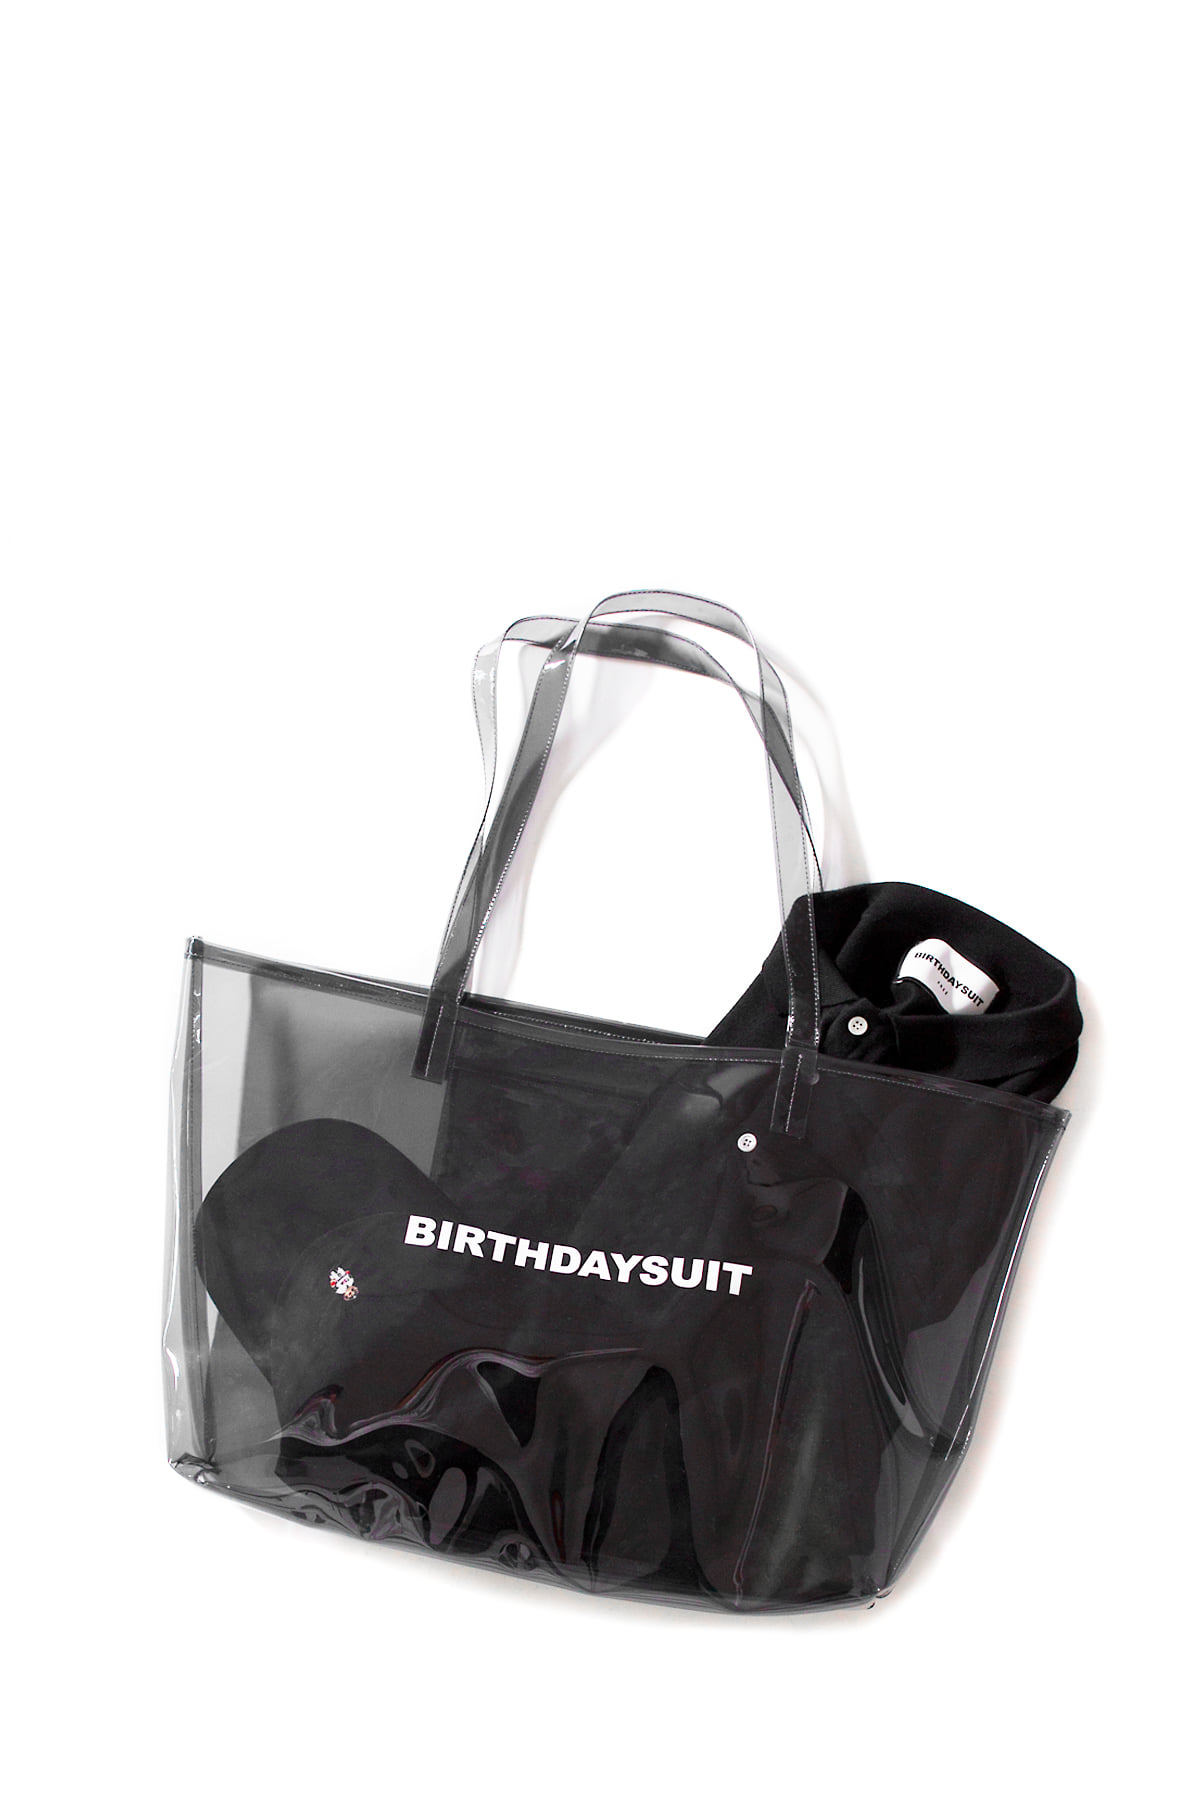 BIRTHDAYSUIT : LOGO PVC (Black)